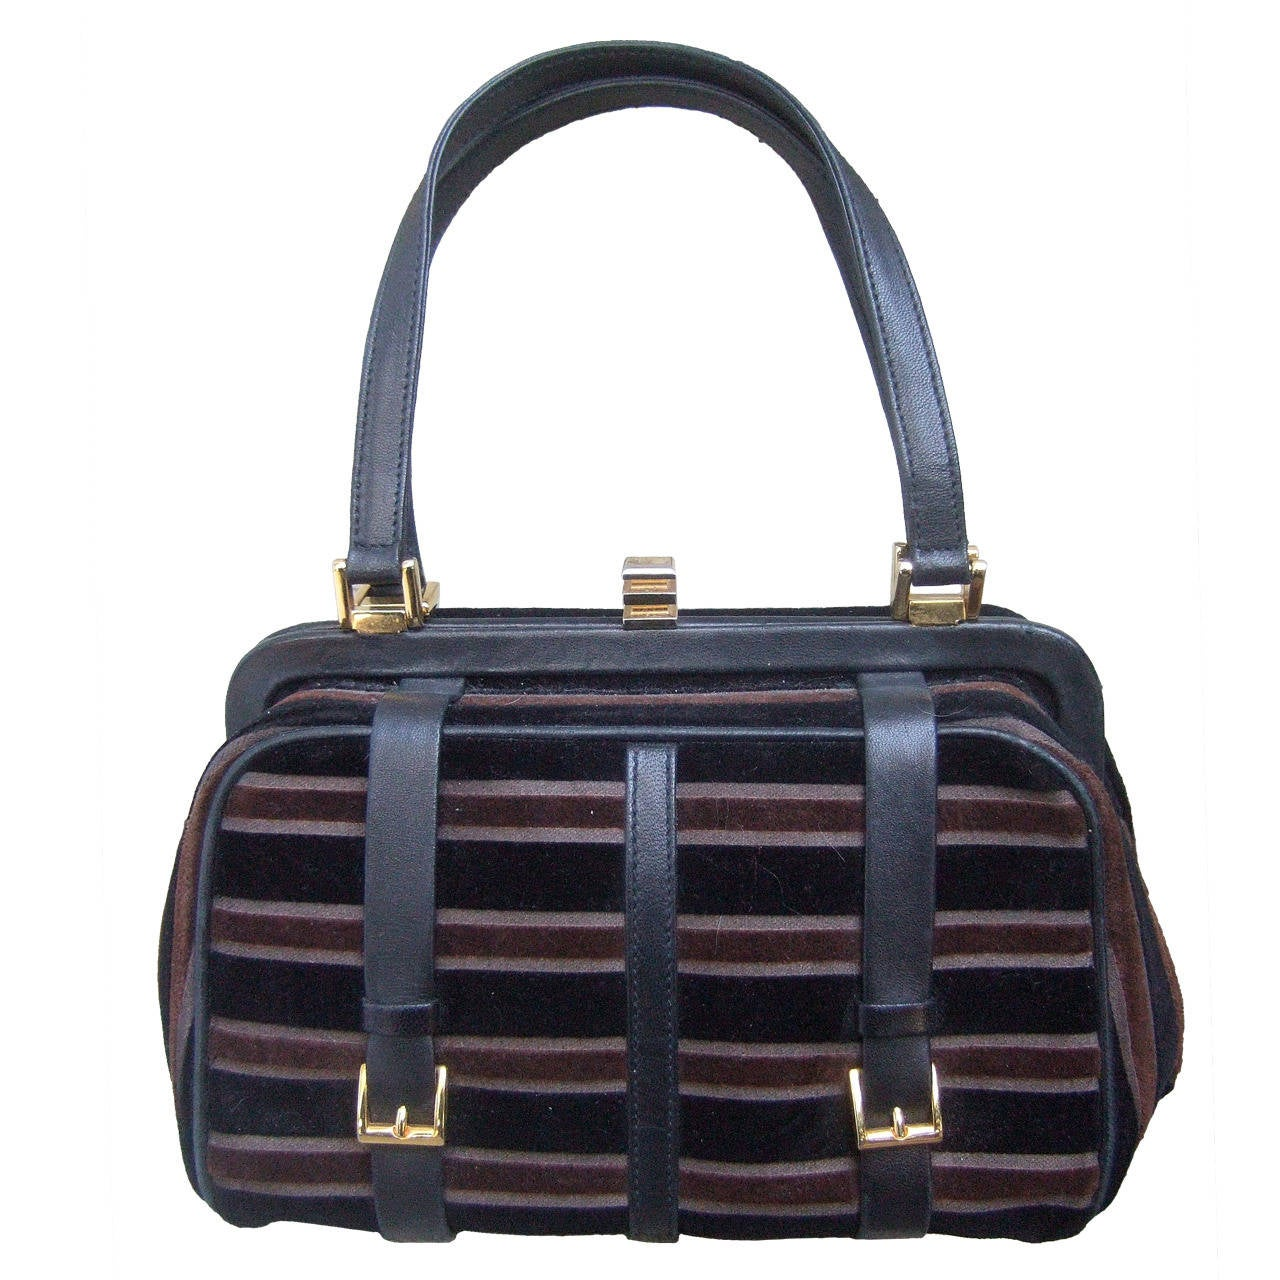 Saks Fifth Avenue Striped Velvet Handbag Made in Italy 1